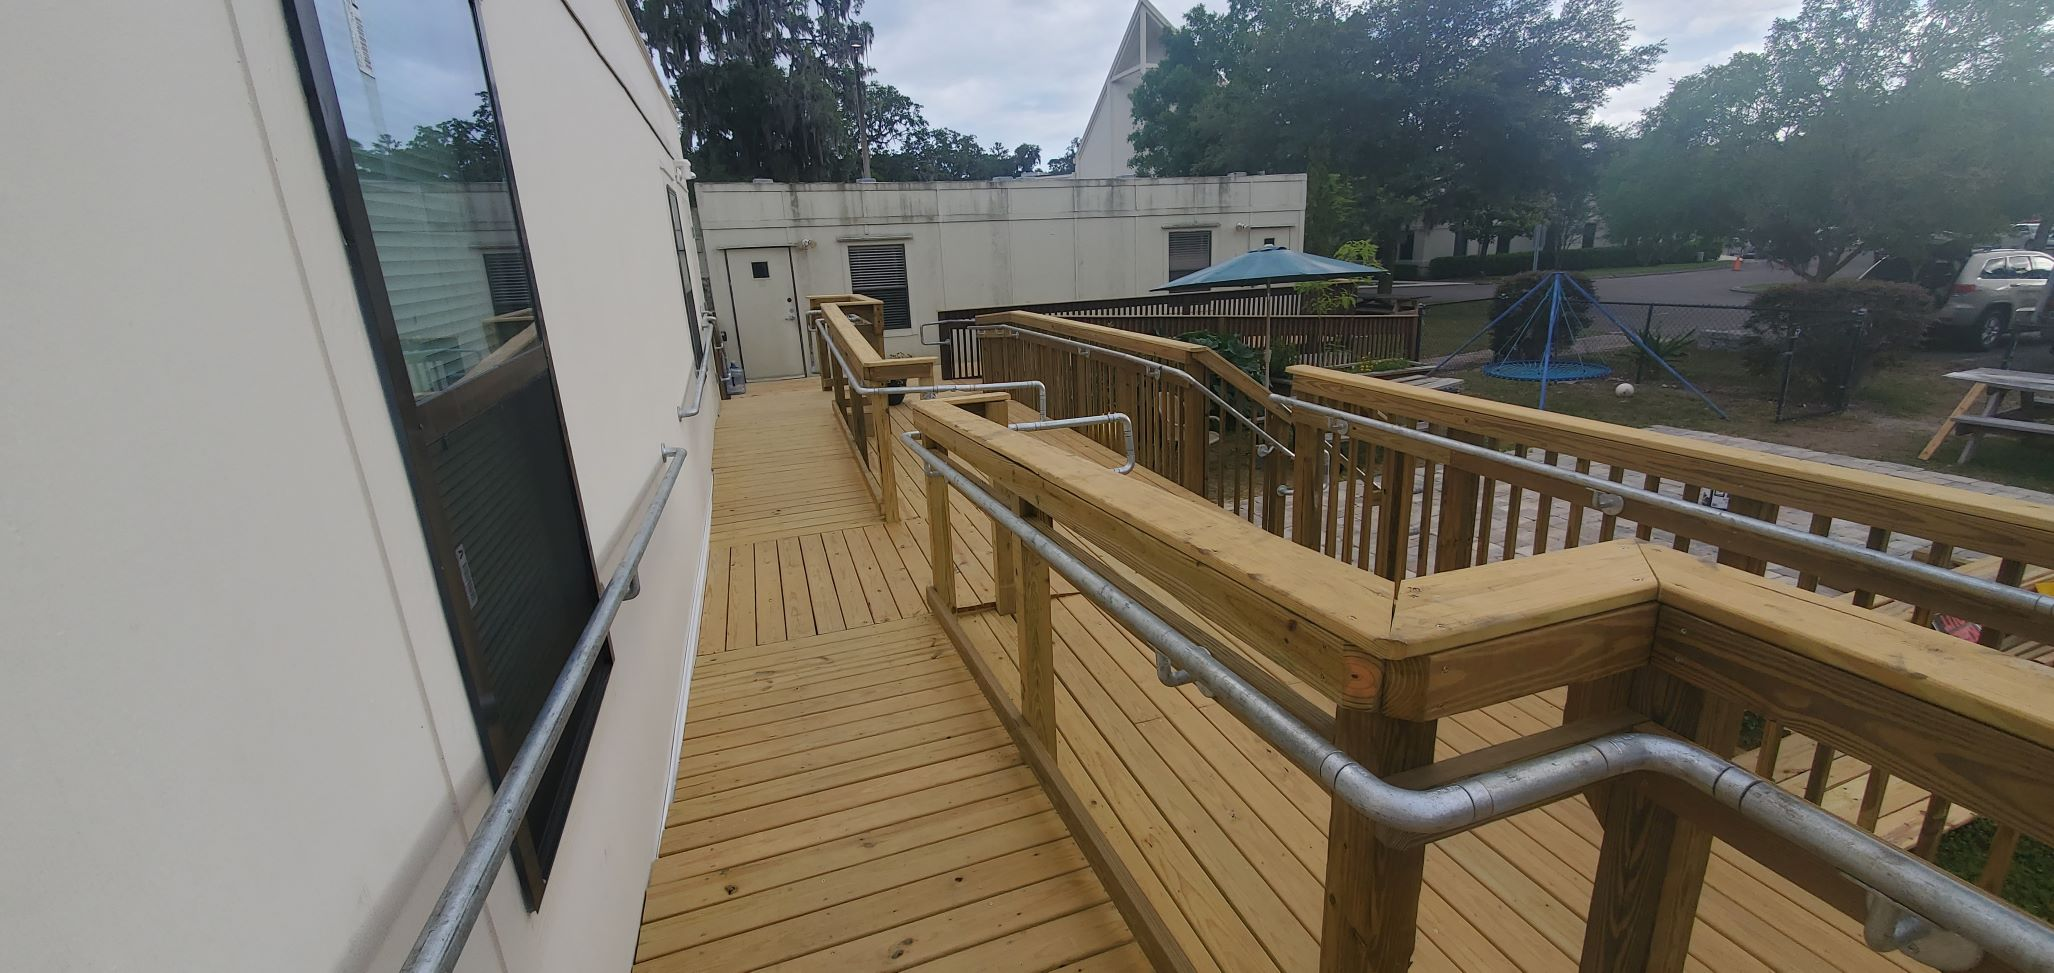 ADA Rail for Ramp and Steps